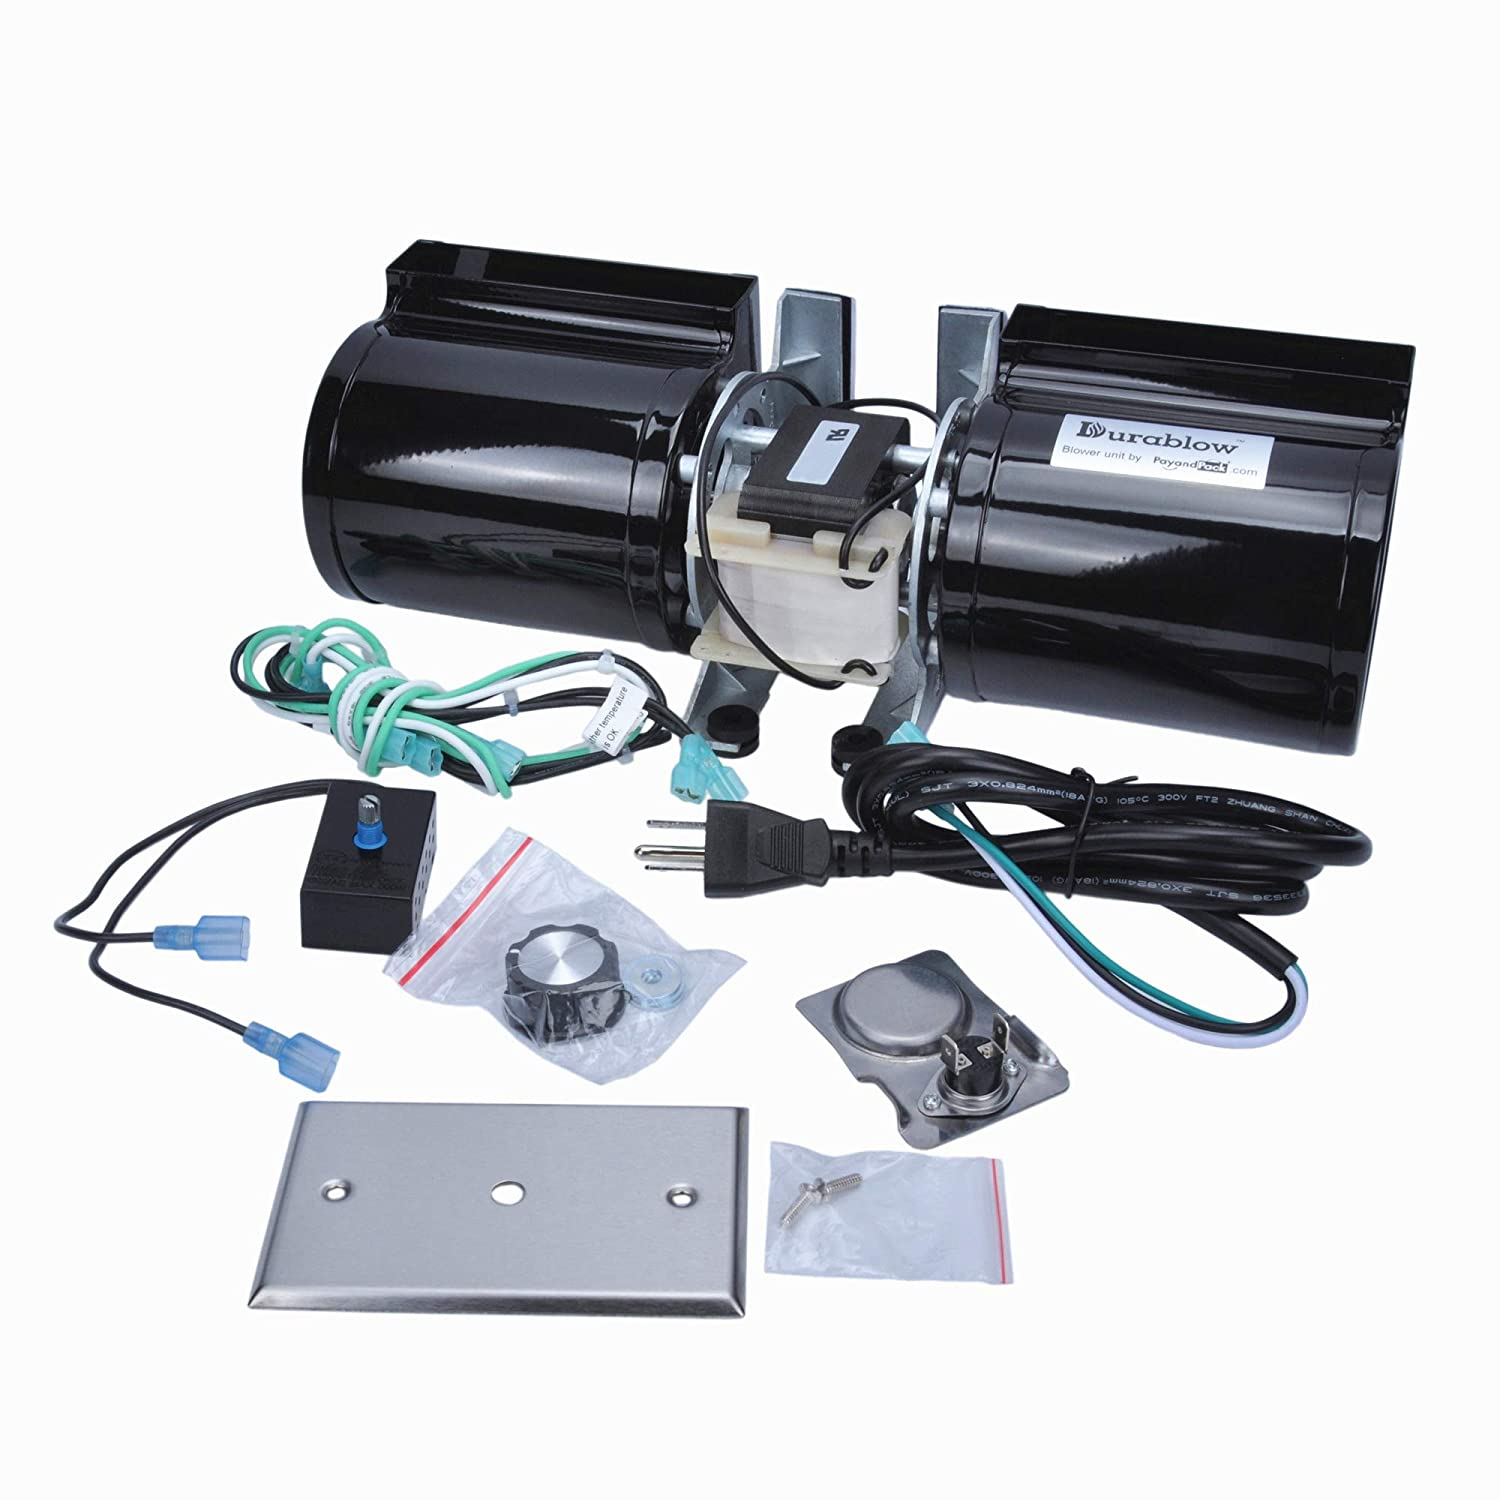 Amazon.com: Durablow GFK-160 Fireplace Stove Blower Complete Kit for  Lennox, Superior, Heat N Glo, Hearth and Home, Quadra Fire, Regency, Royal,  Jakel, ...